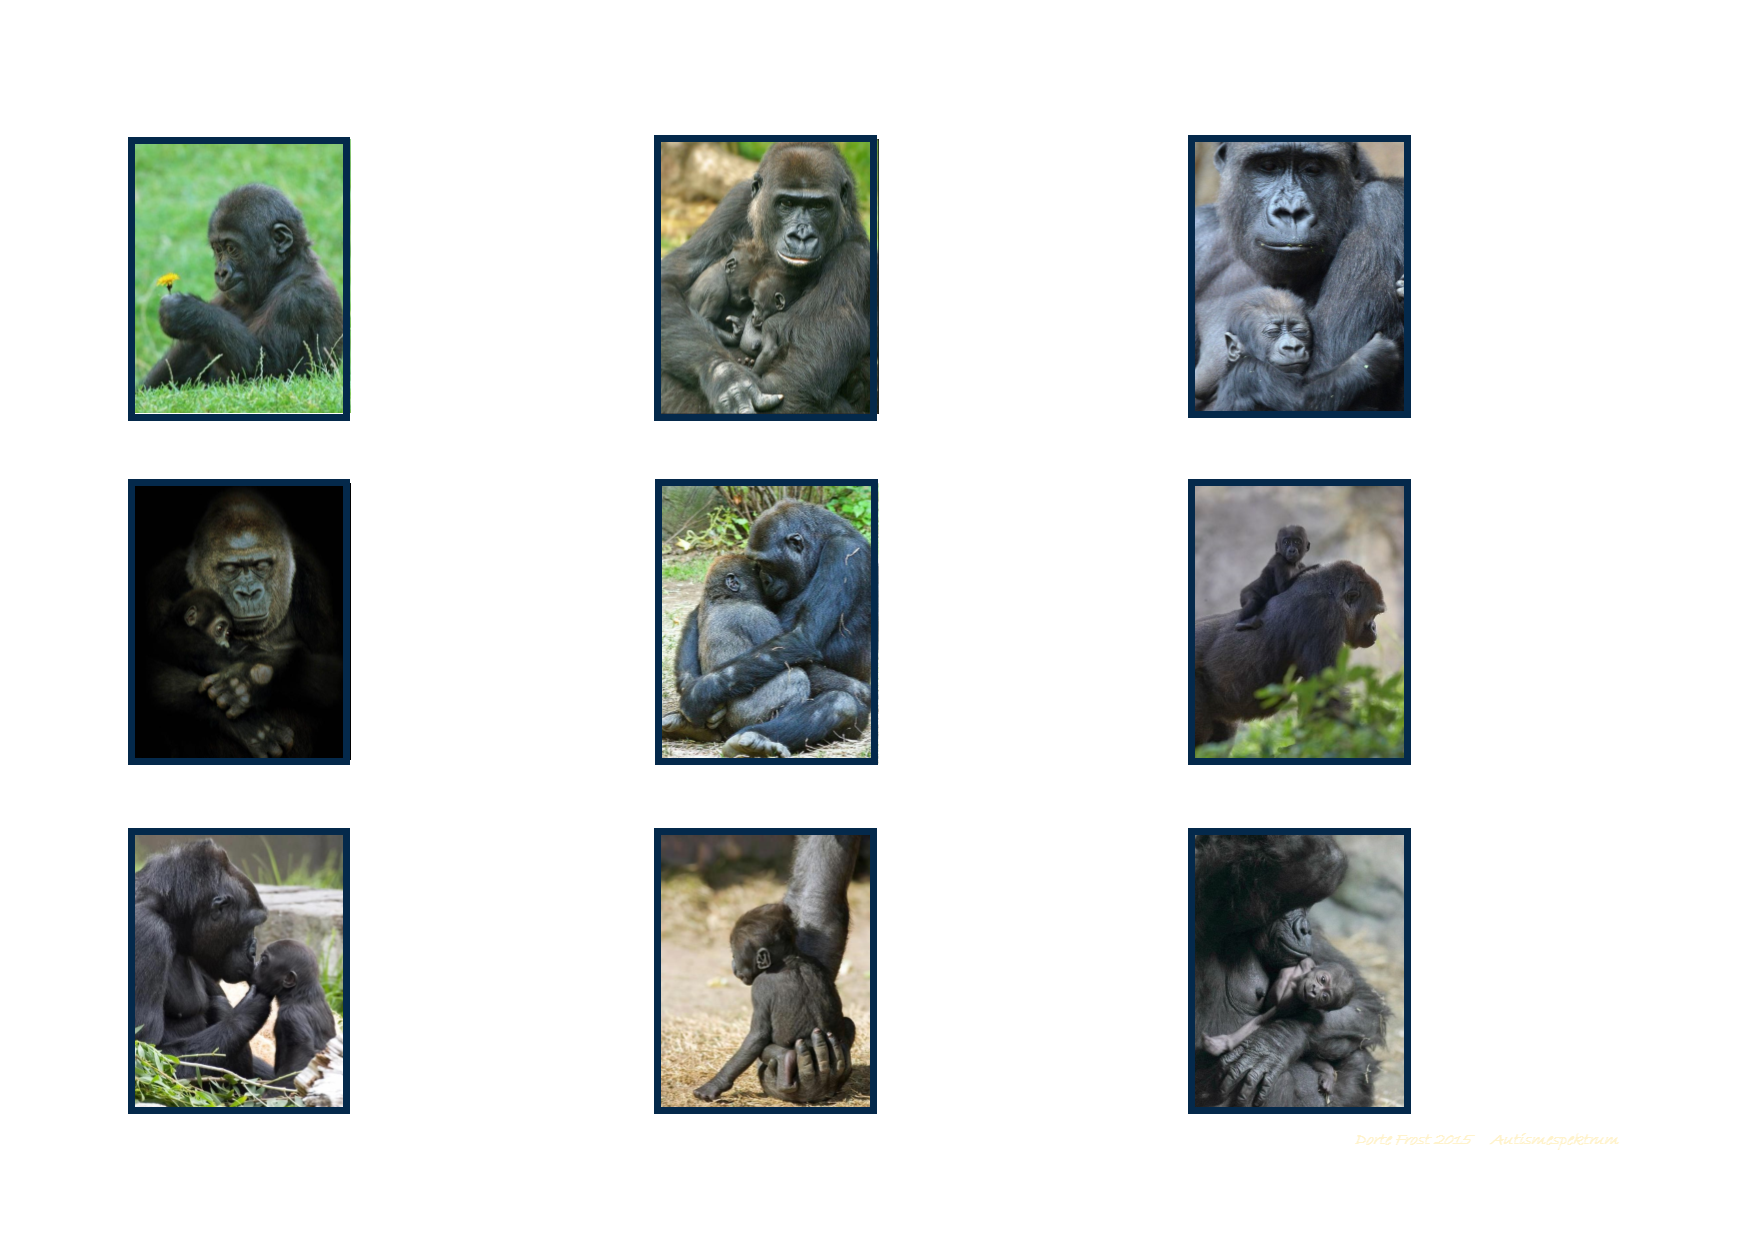 Tiles for the gorilla matching game. By Autismespektrum